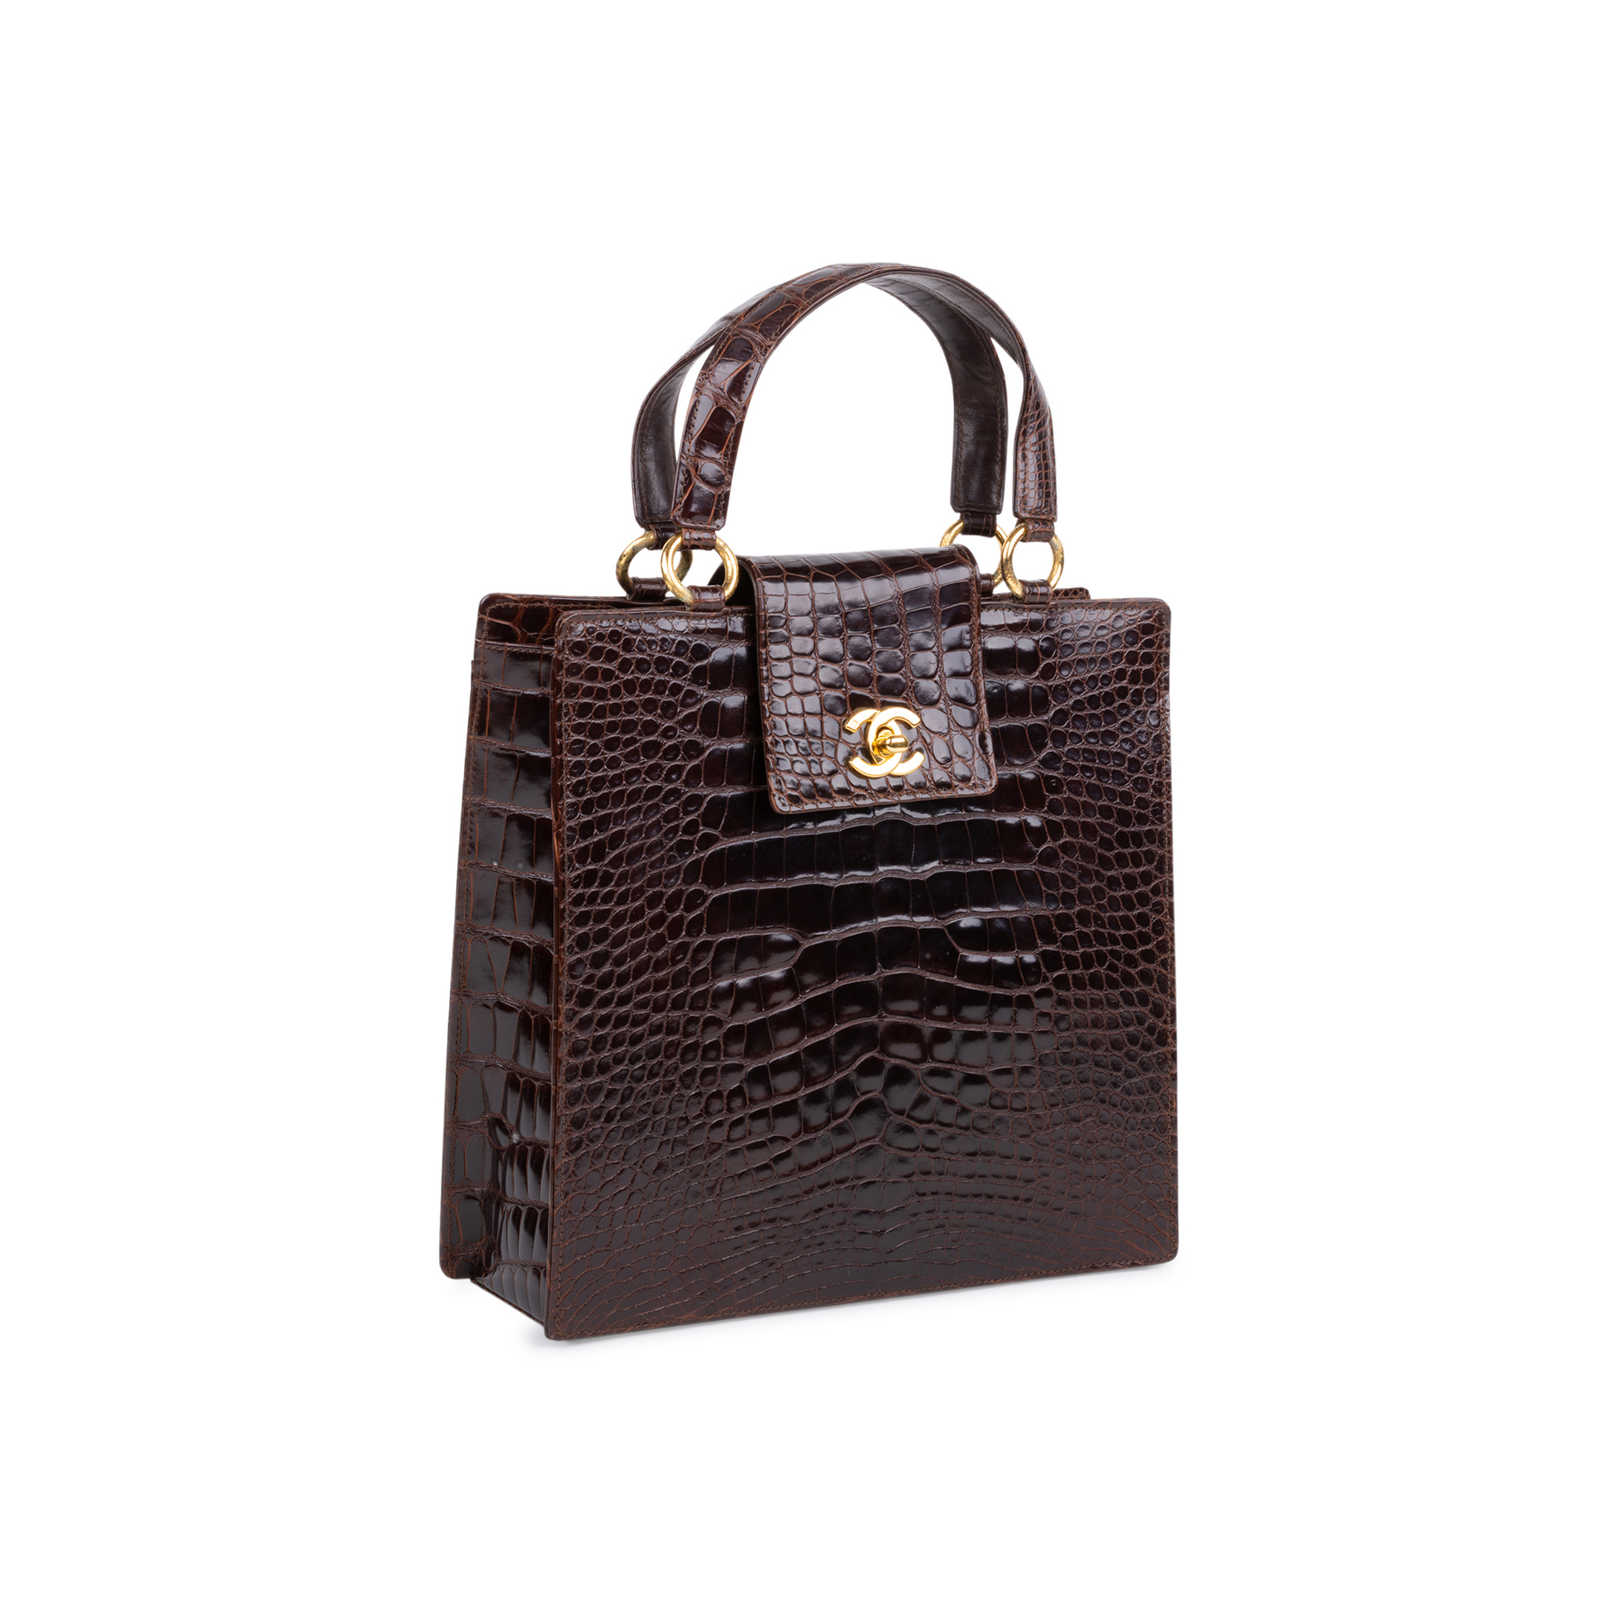 5aeee7fc54c3 ... Authentic Vintage Chanel Crocodile Top Handle Bag (PSS-606-00014) -  Thumbnail ...